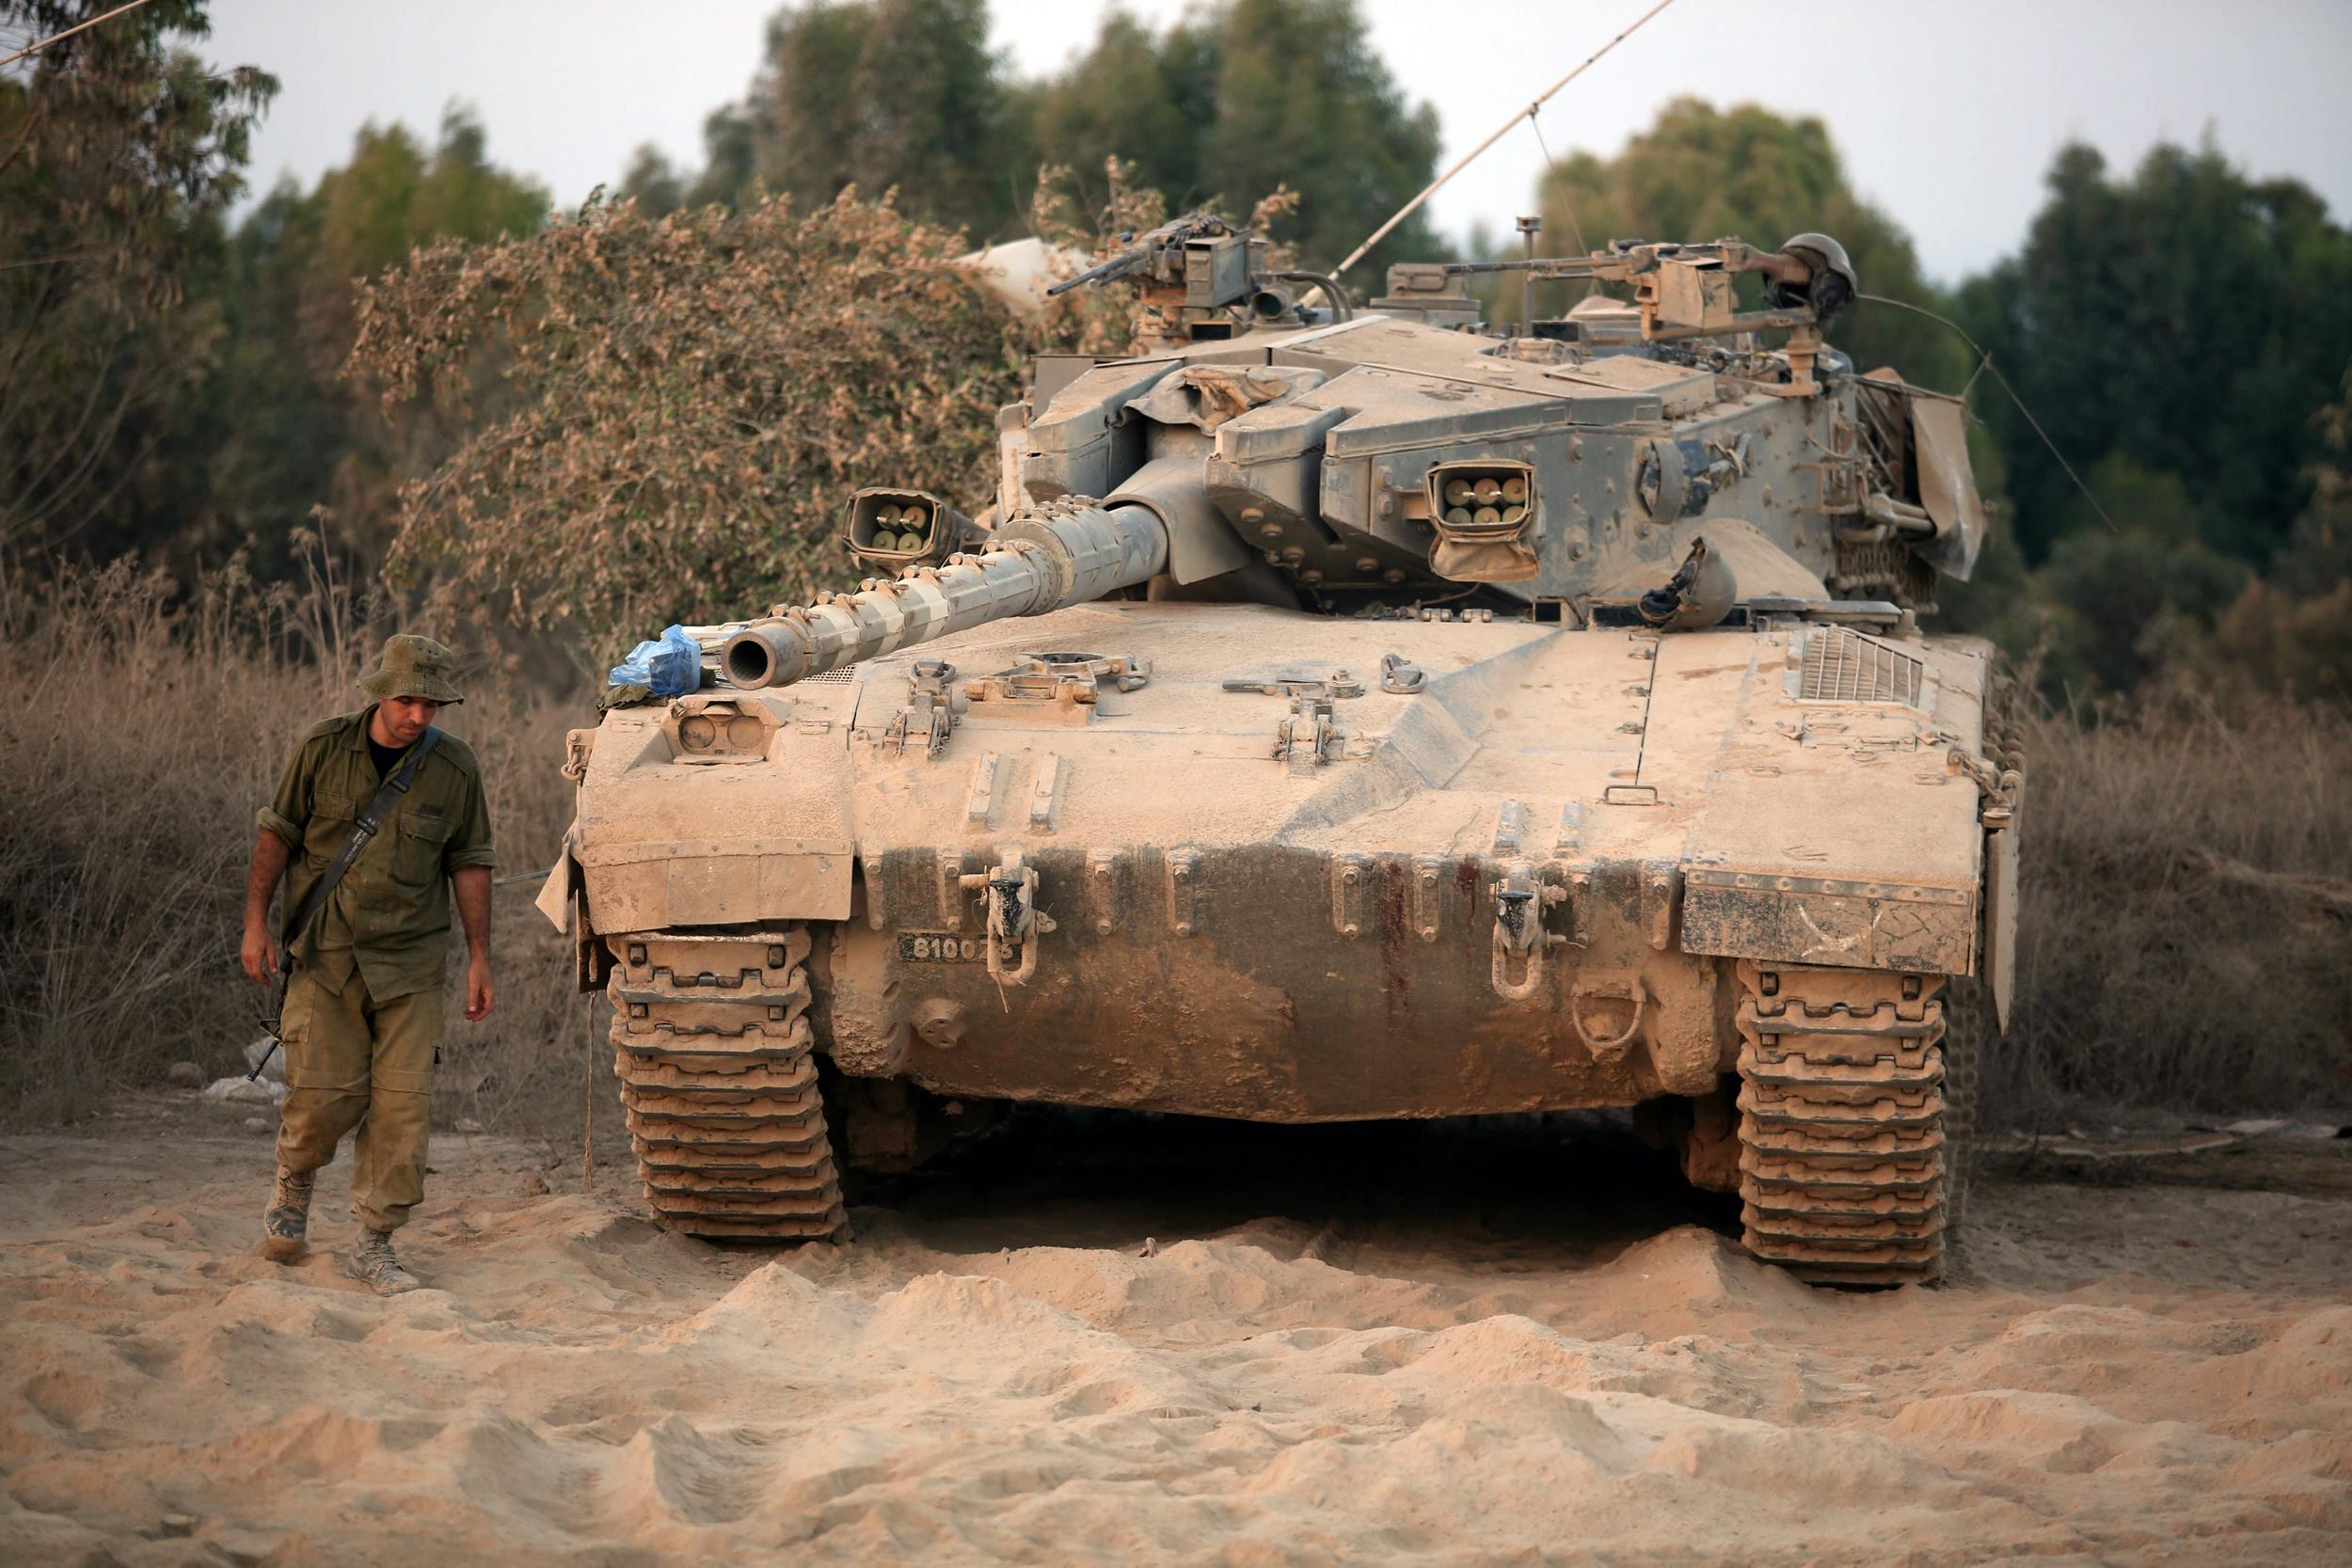 Image: Israel moves more troops to Gaza border before truce expires